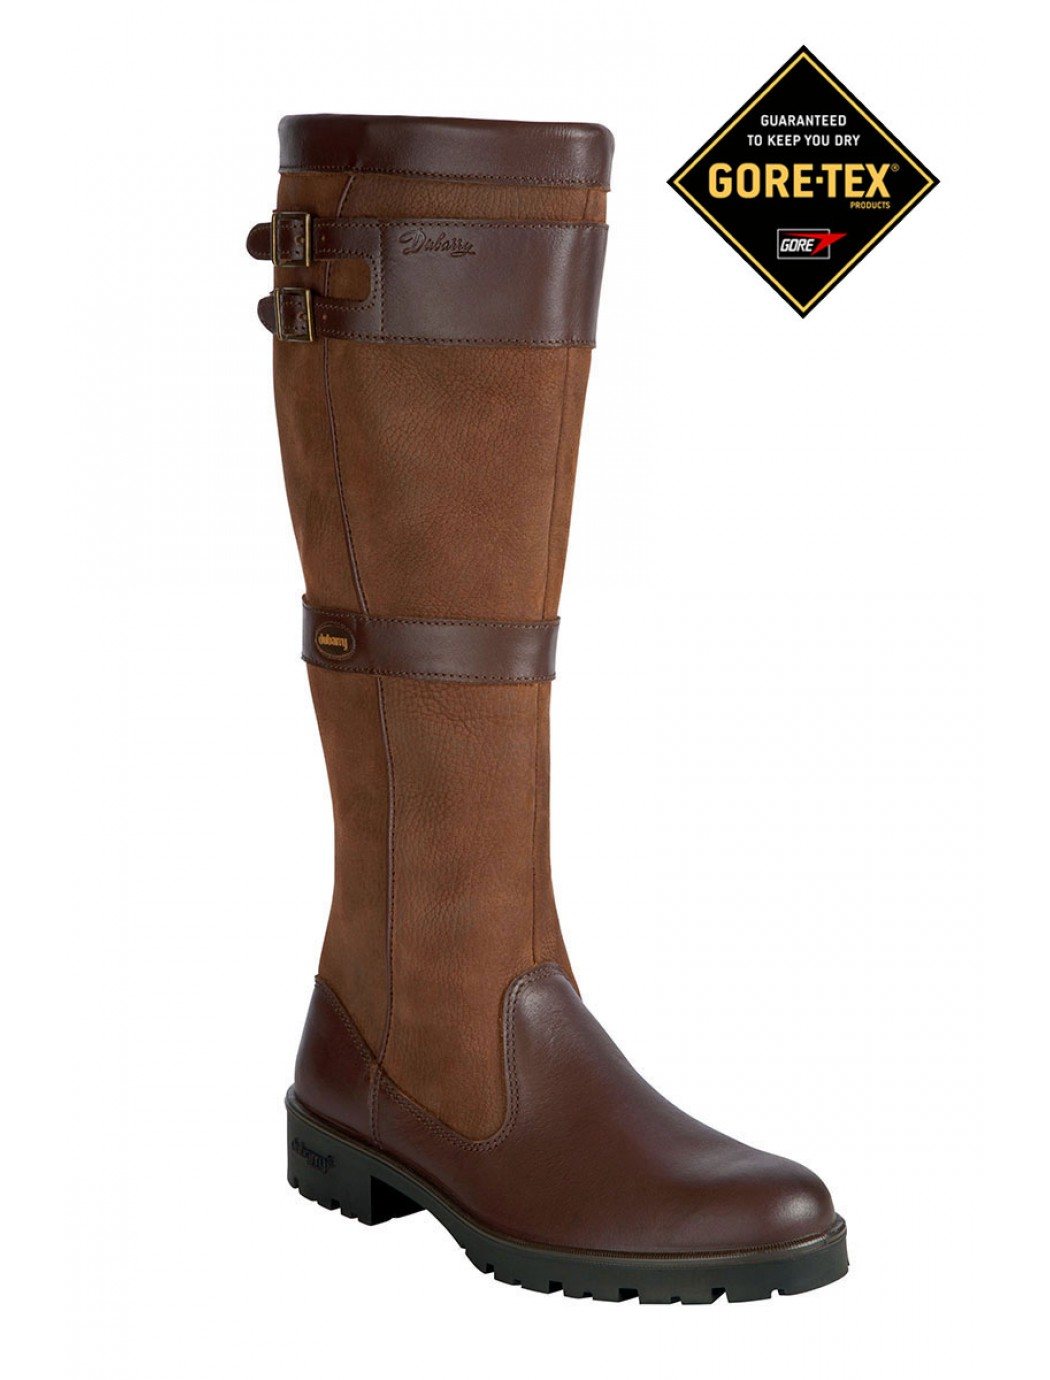 longford-country-boots-walnut 2 1